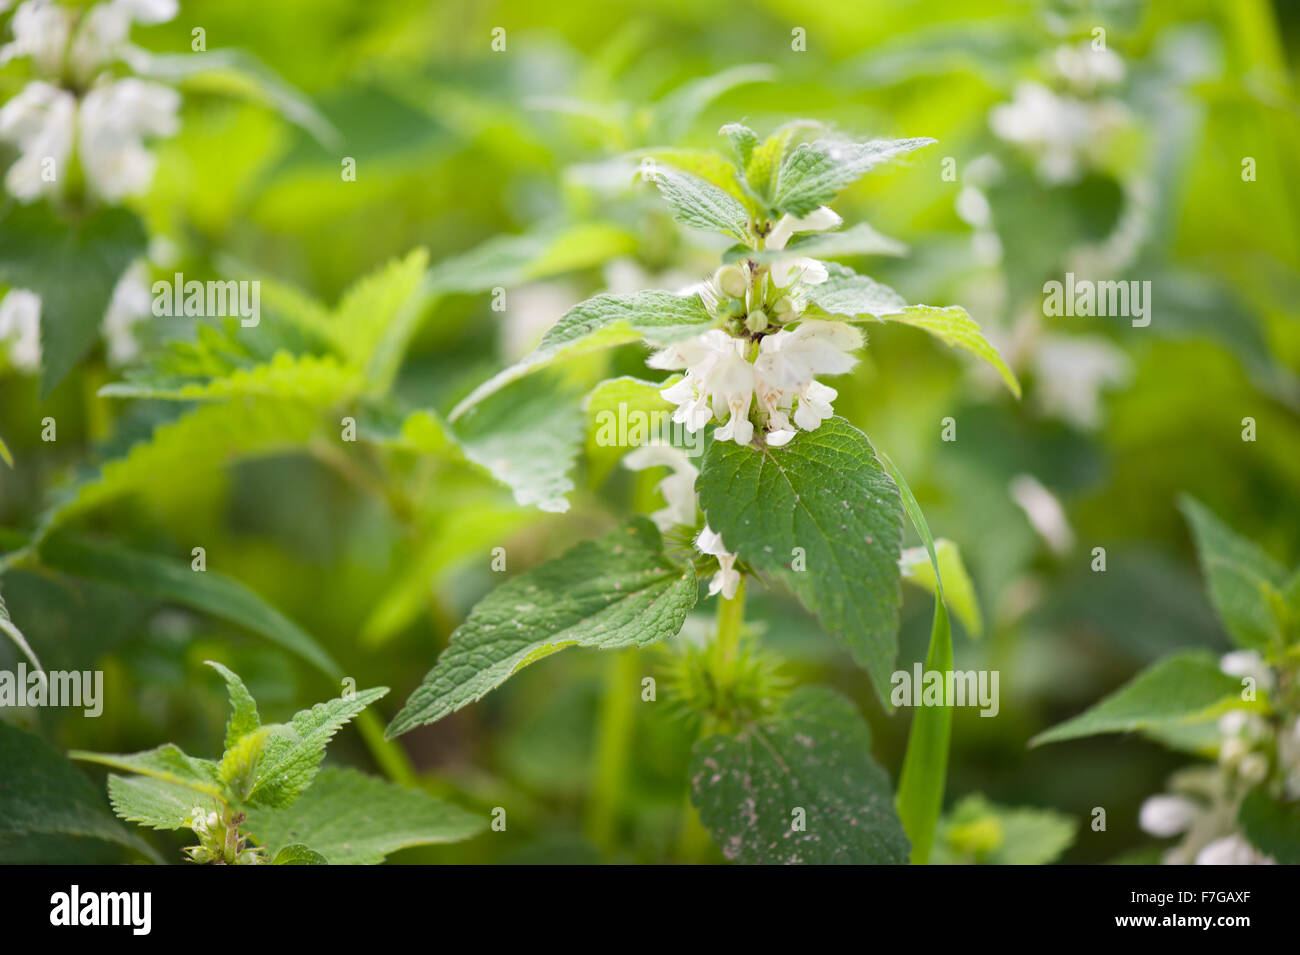 Lamium Album White Flowers Macro Herbal Medicine Flowering